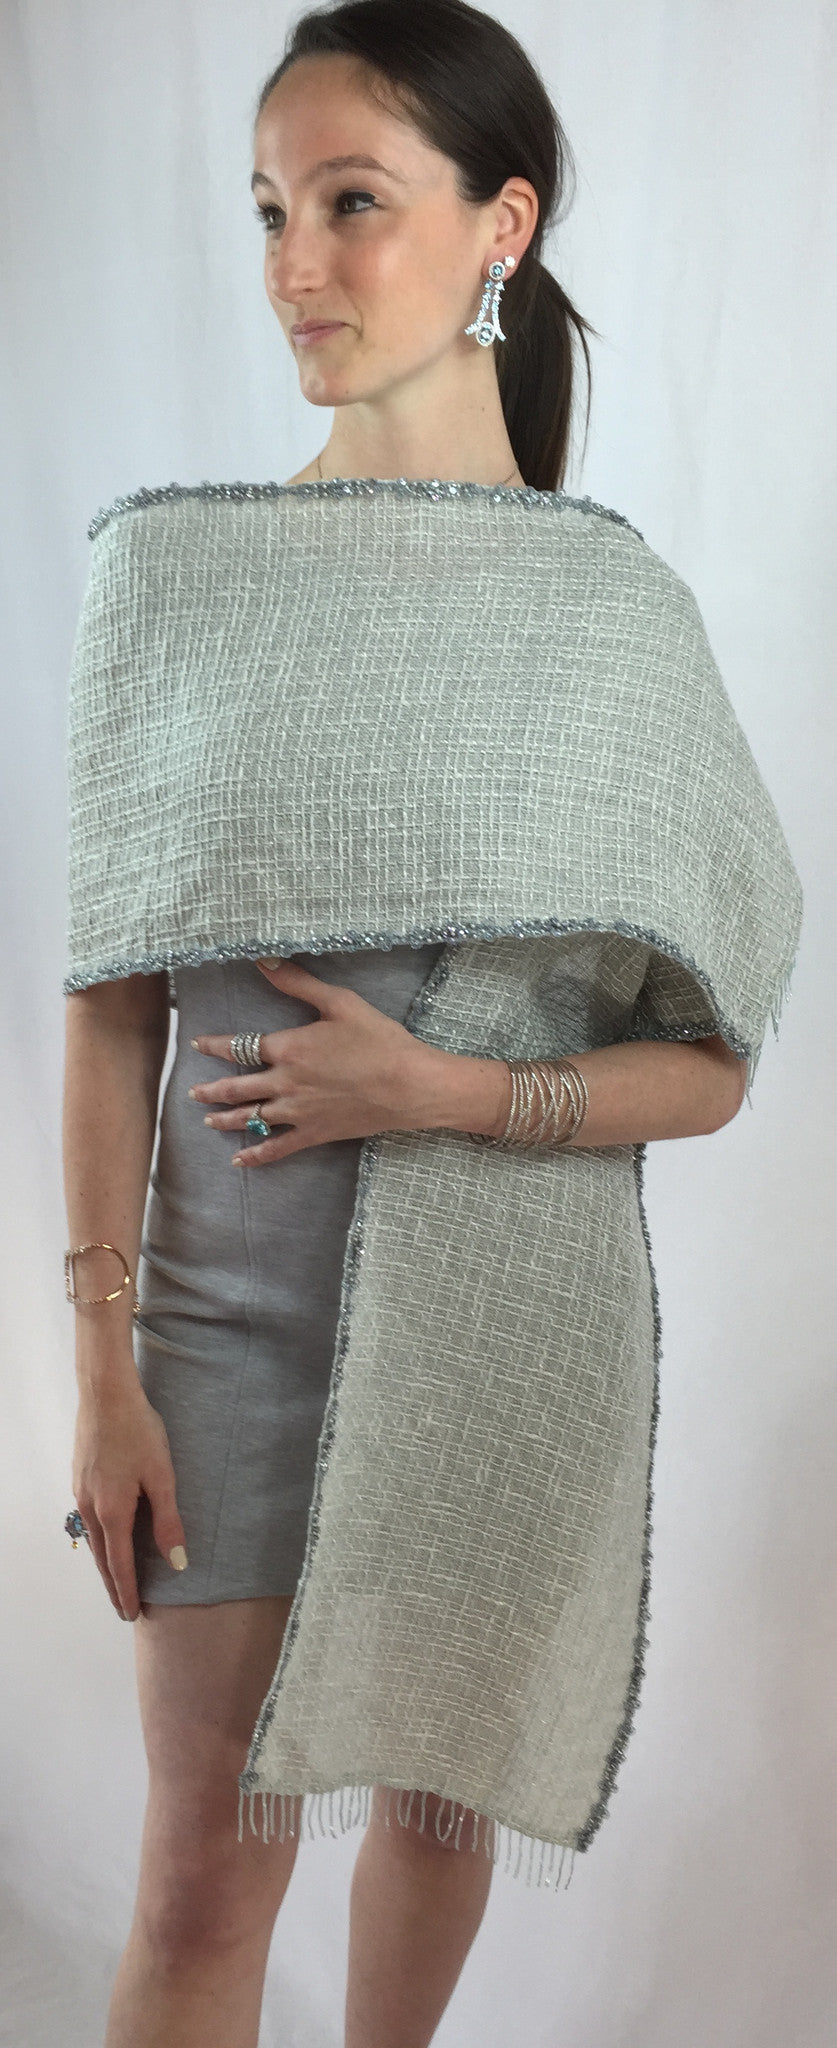 Janet Deleuse Couture Beaded Silk and Linen Wrap, SALE, SOLD